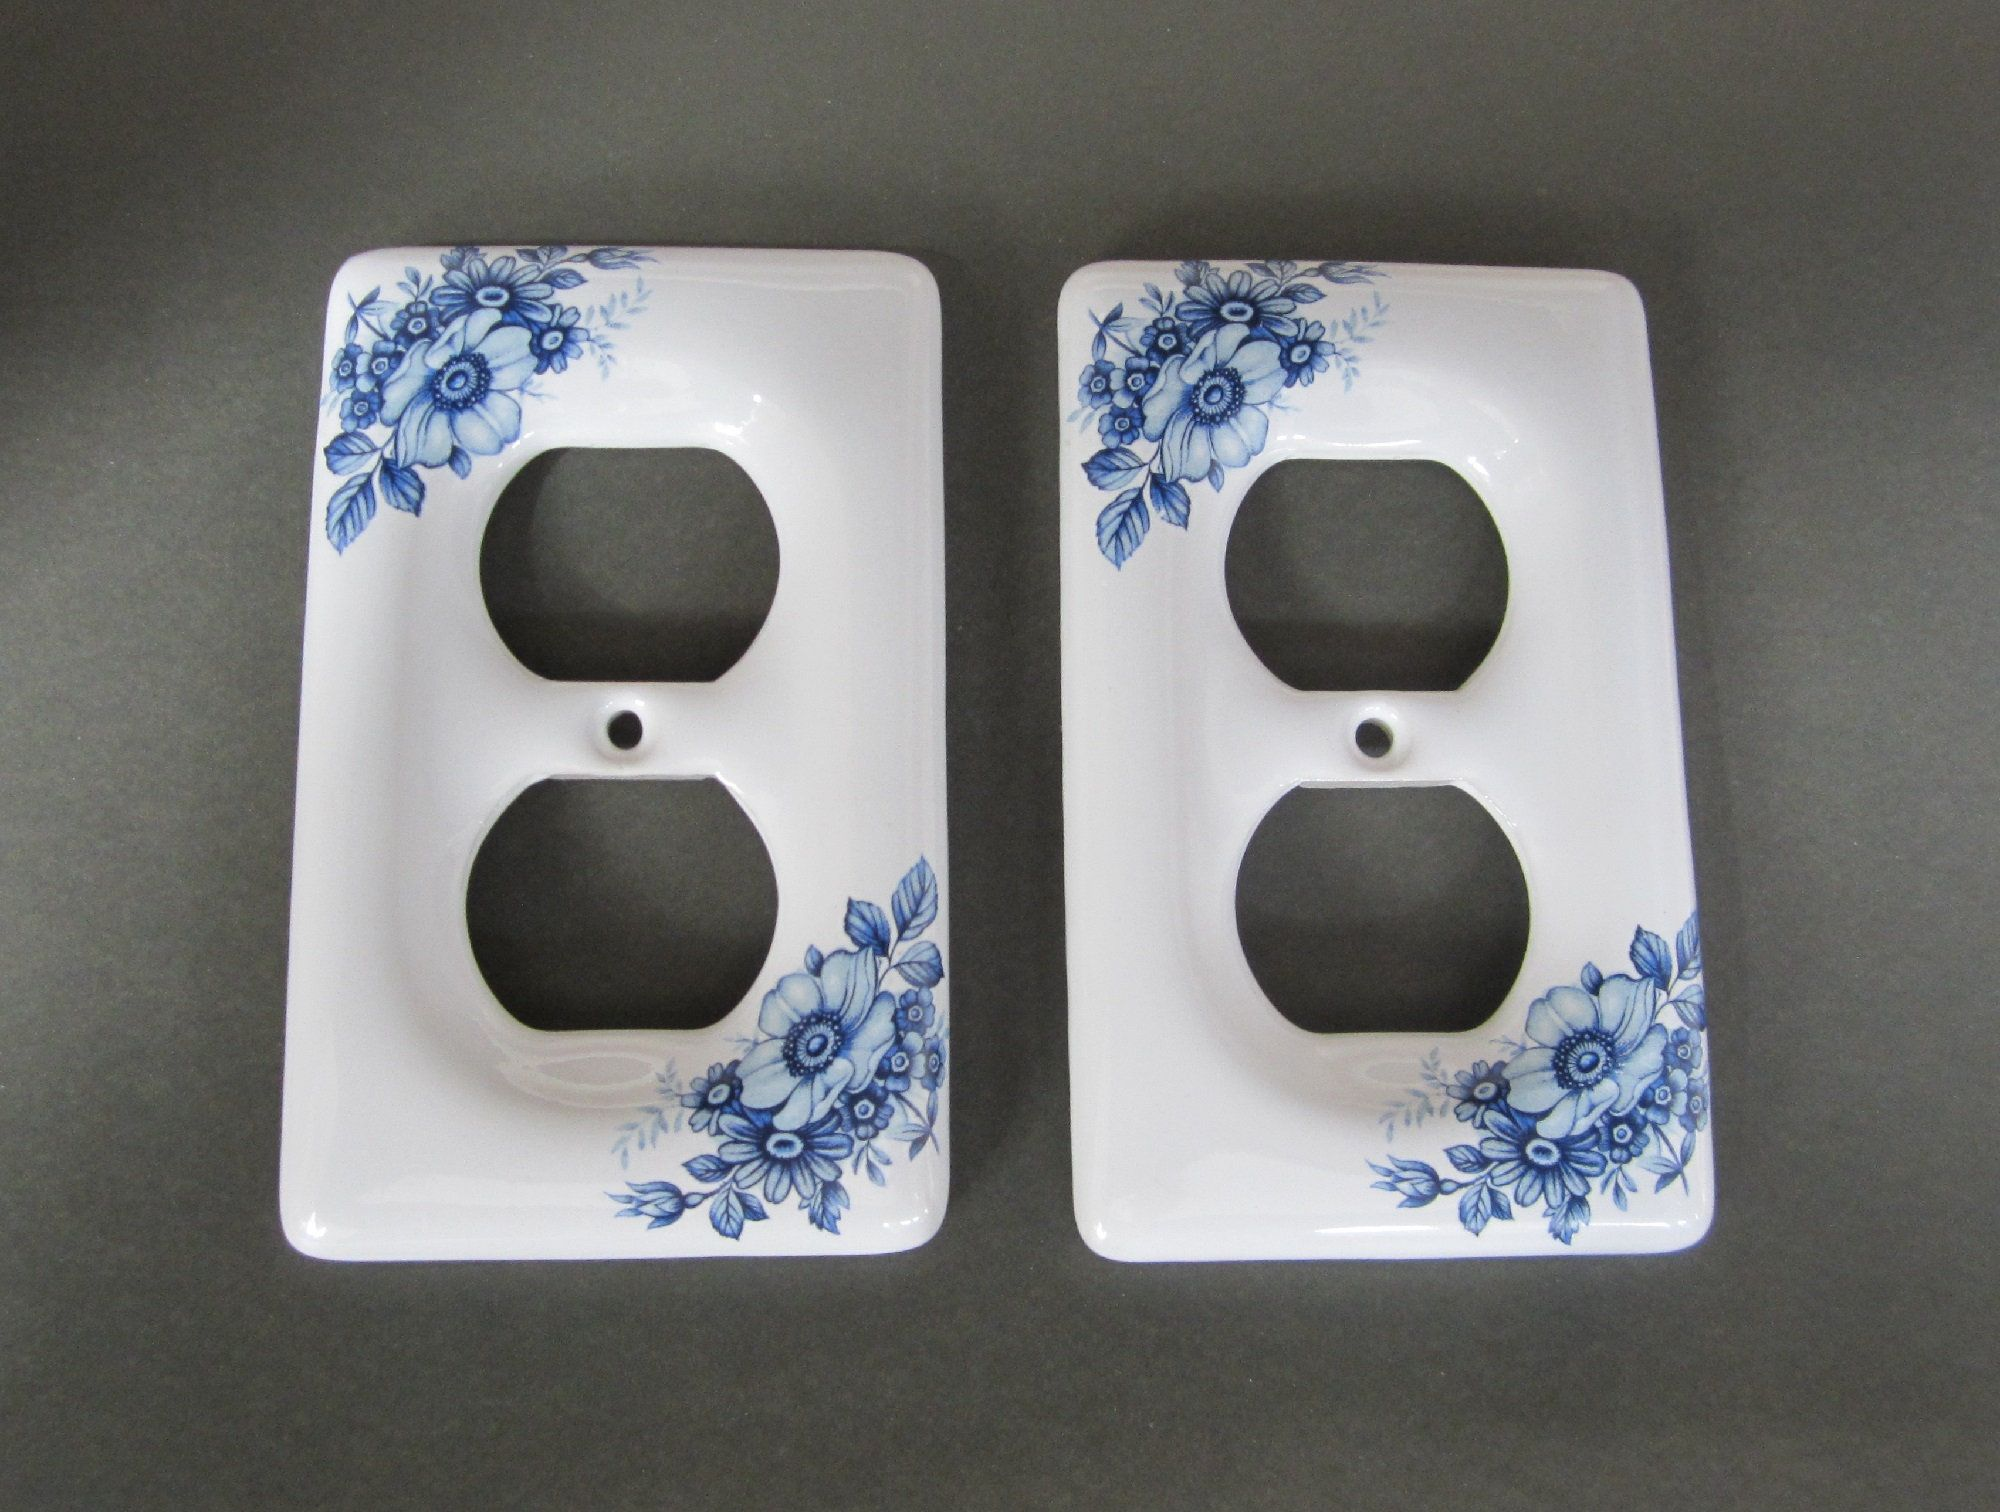 2 Pc Ceramic Outlet Cover Plate Blue Delft Style Floral Etsy Blue Plates Outlet Covers Ceramics